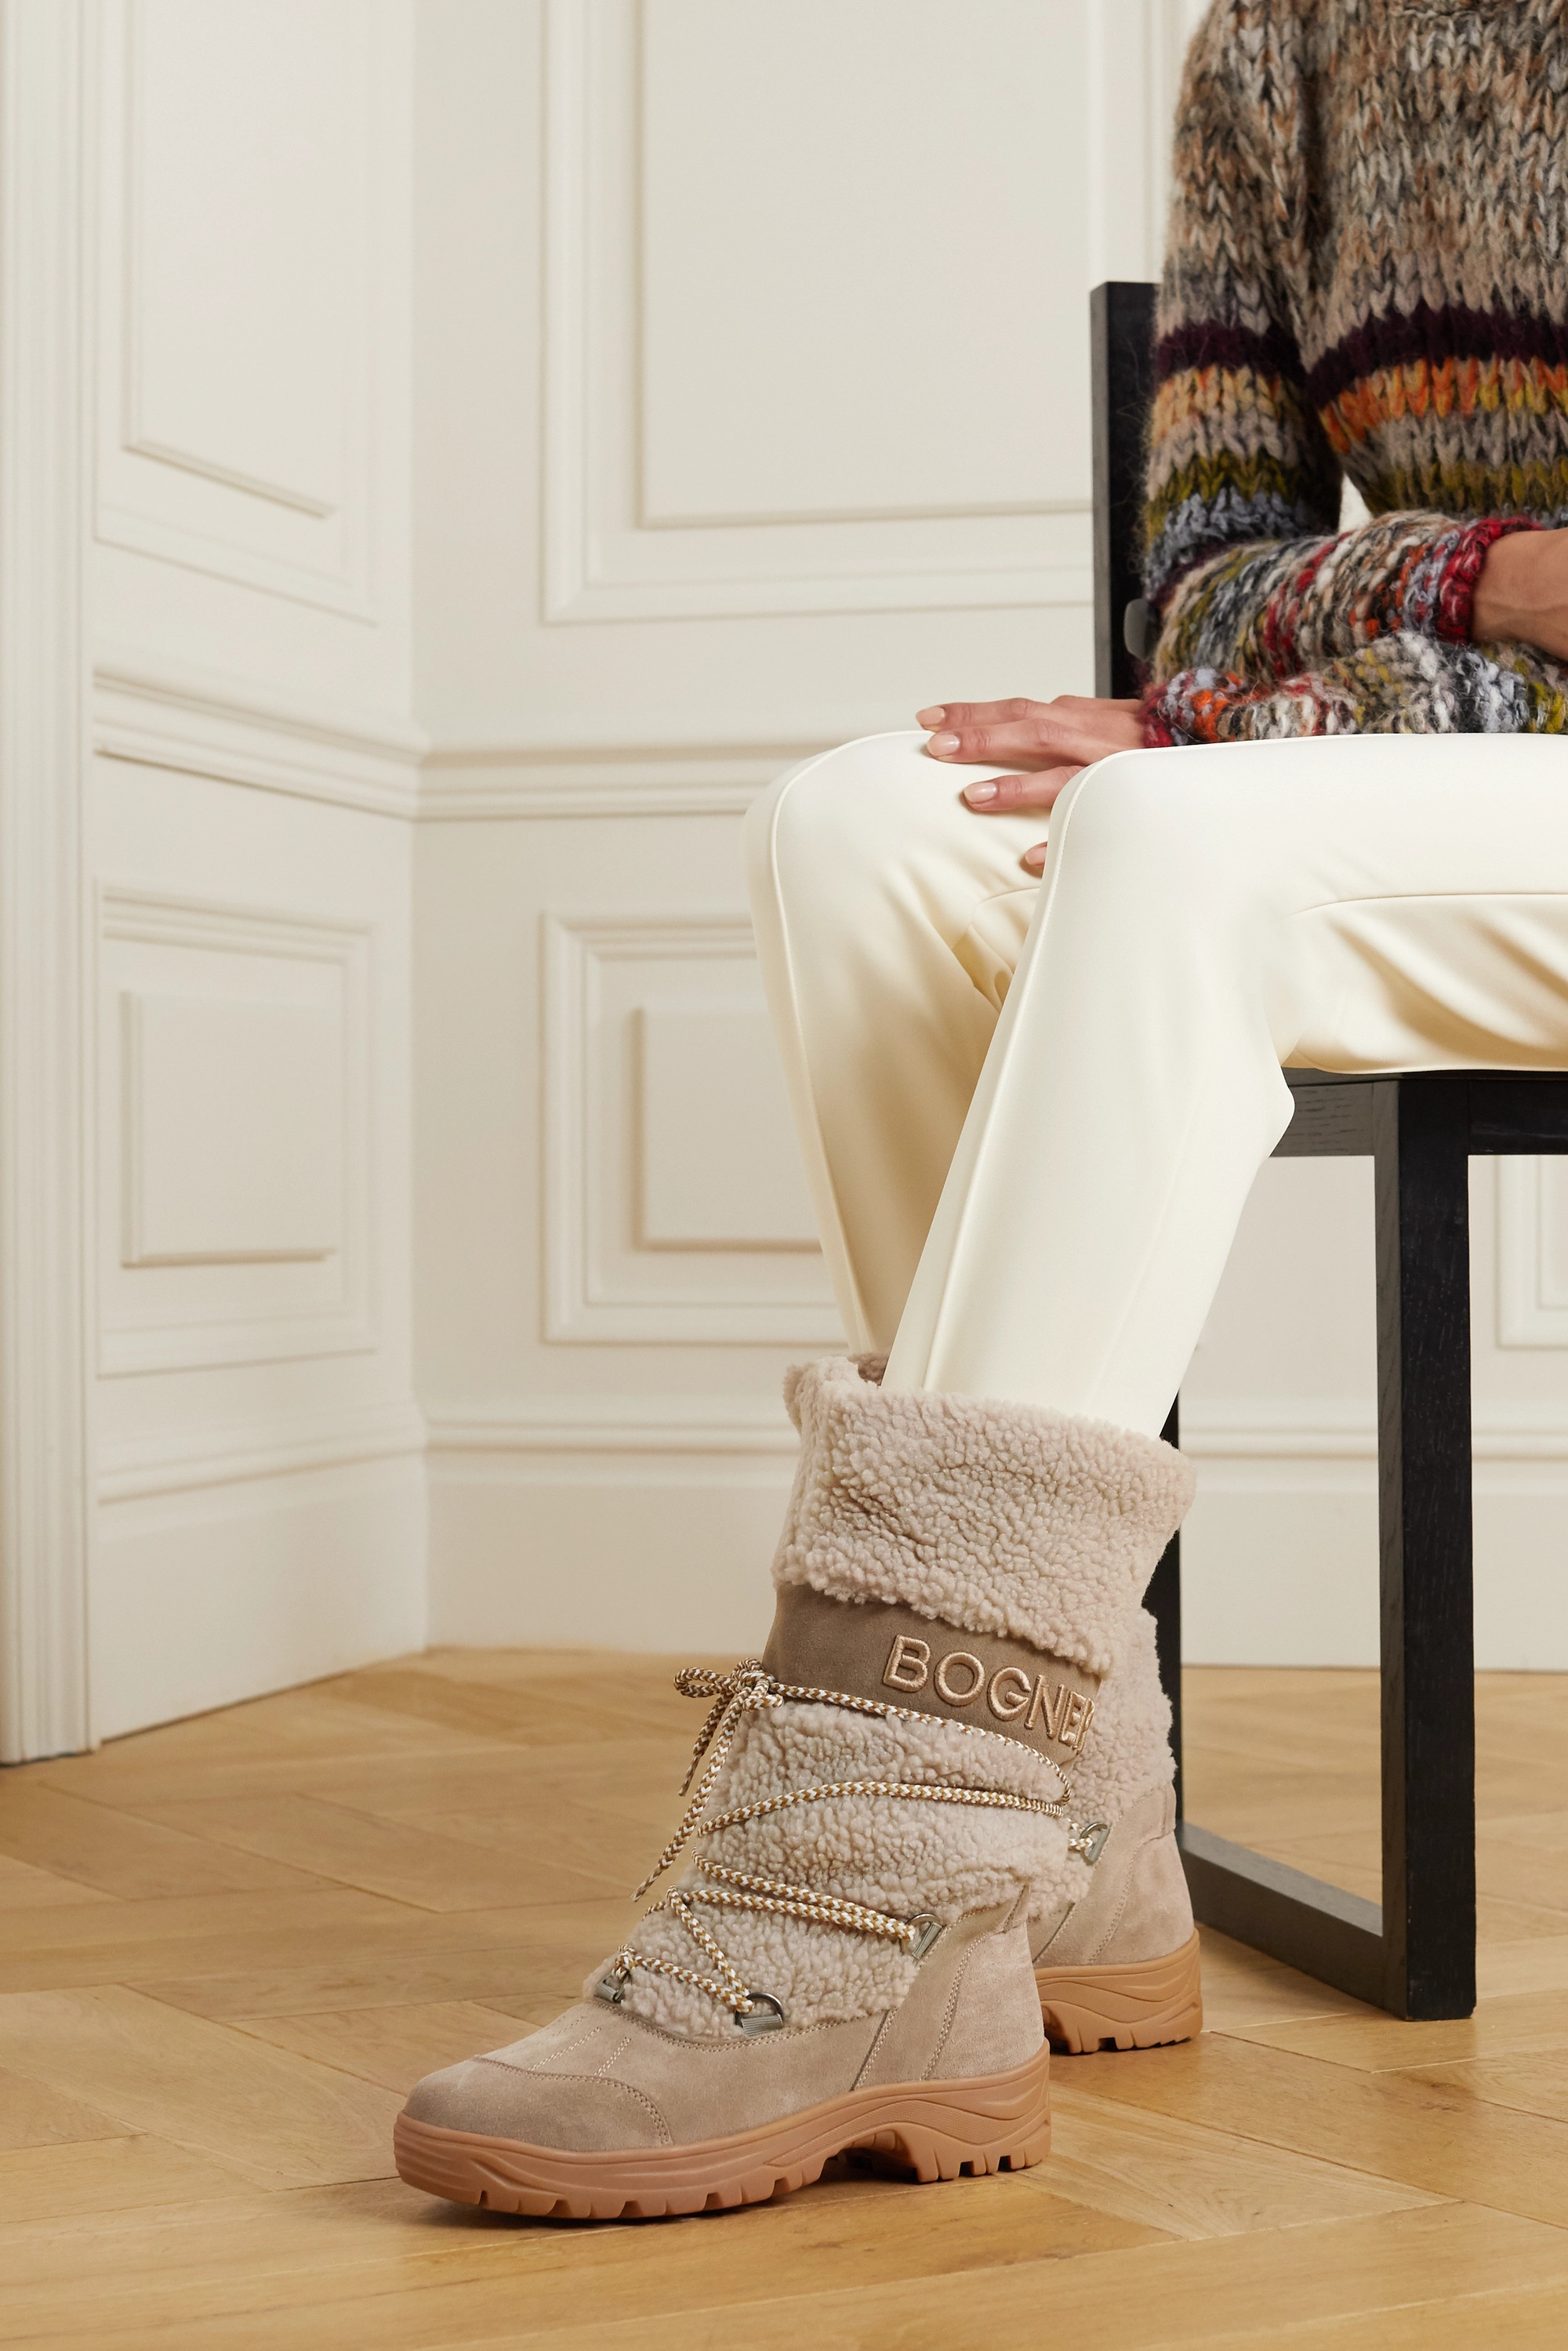 Bogner Alta Badia embroidered suede and shearling snow boots